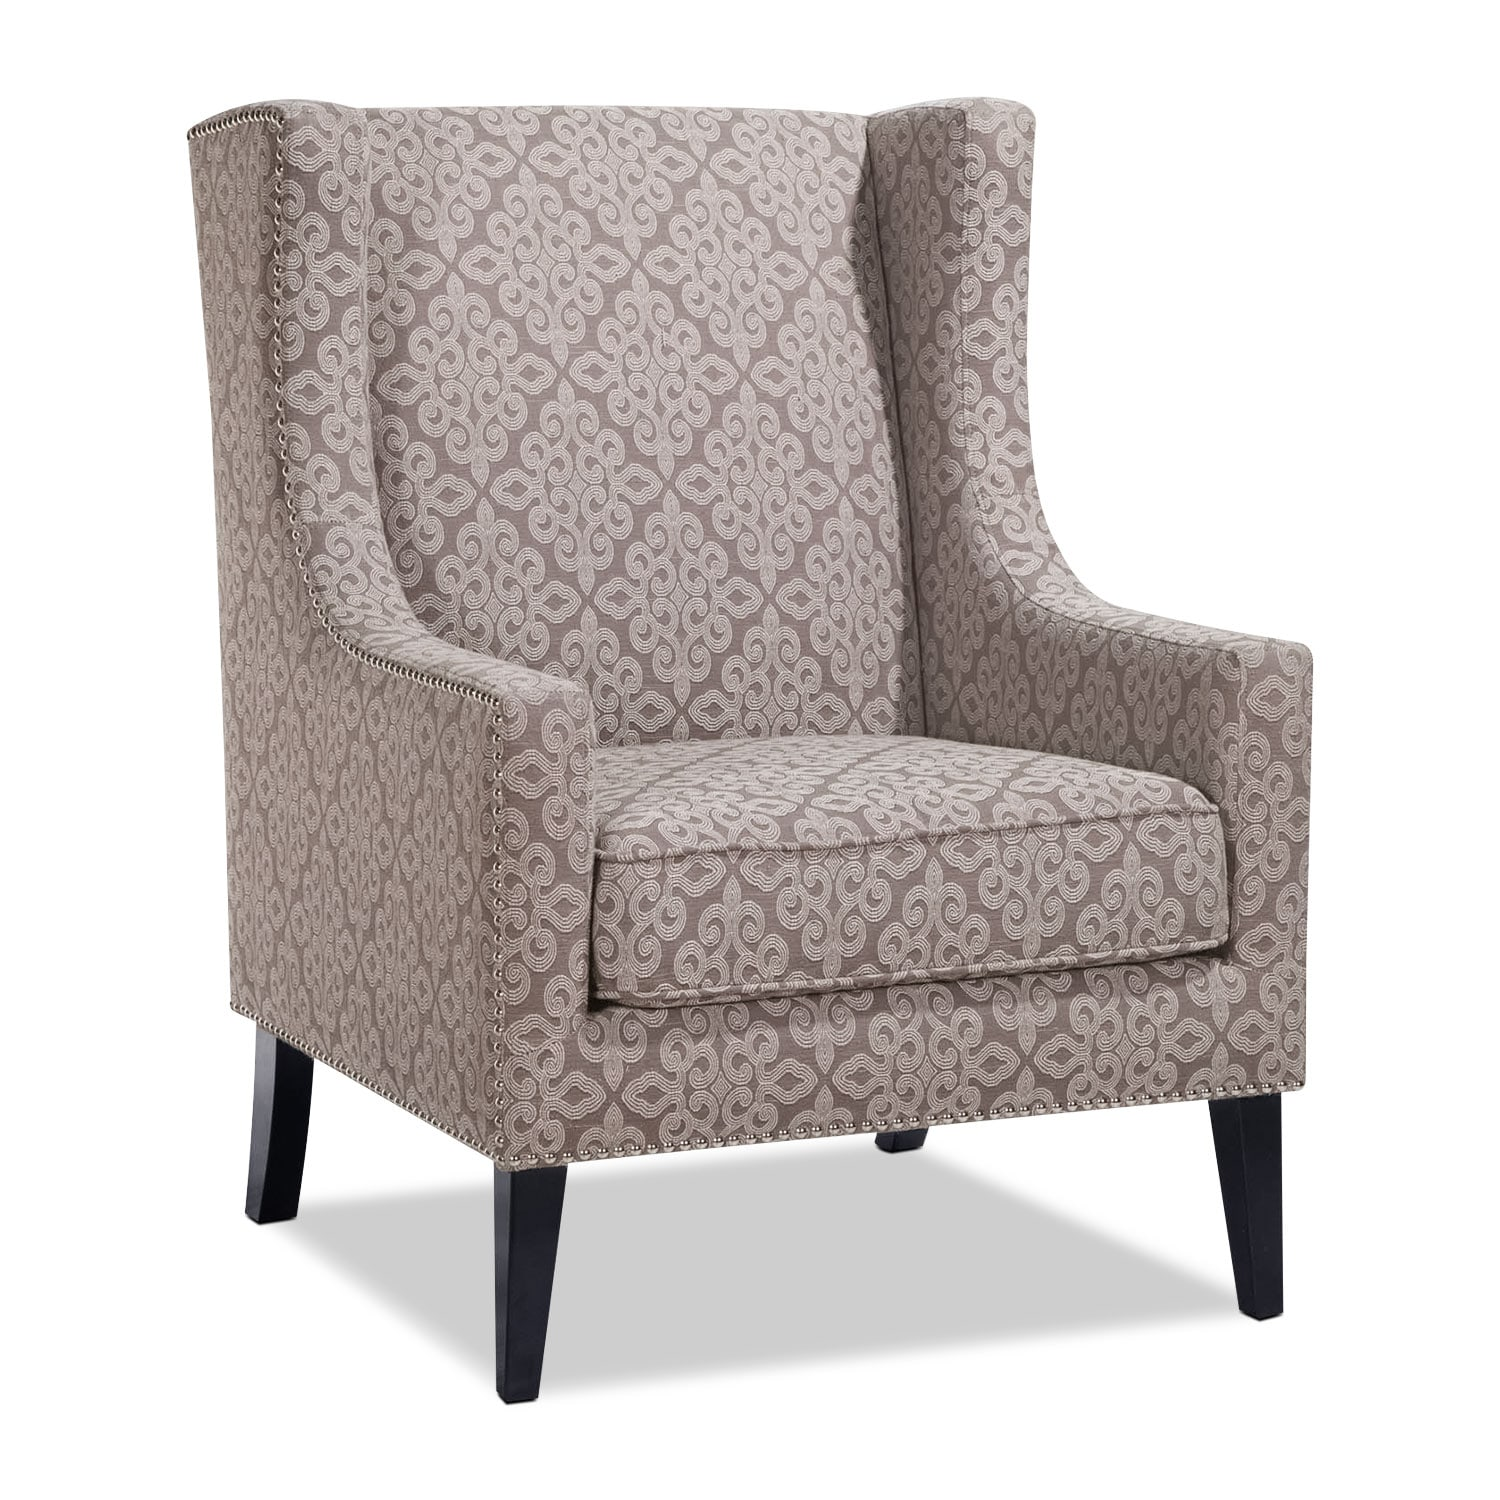 Blythe Accent Chair - Gray